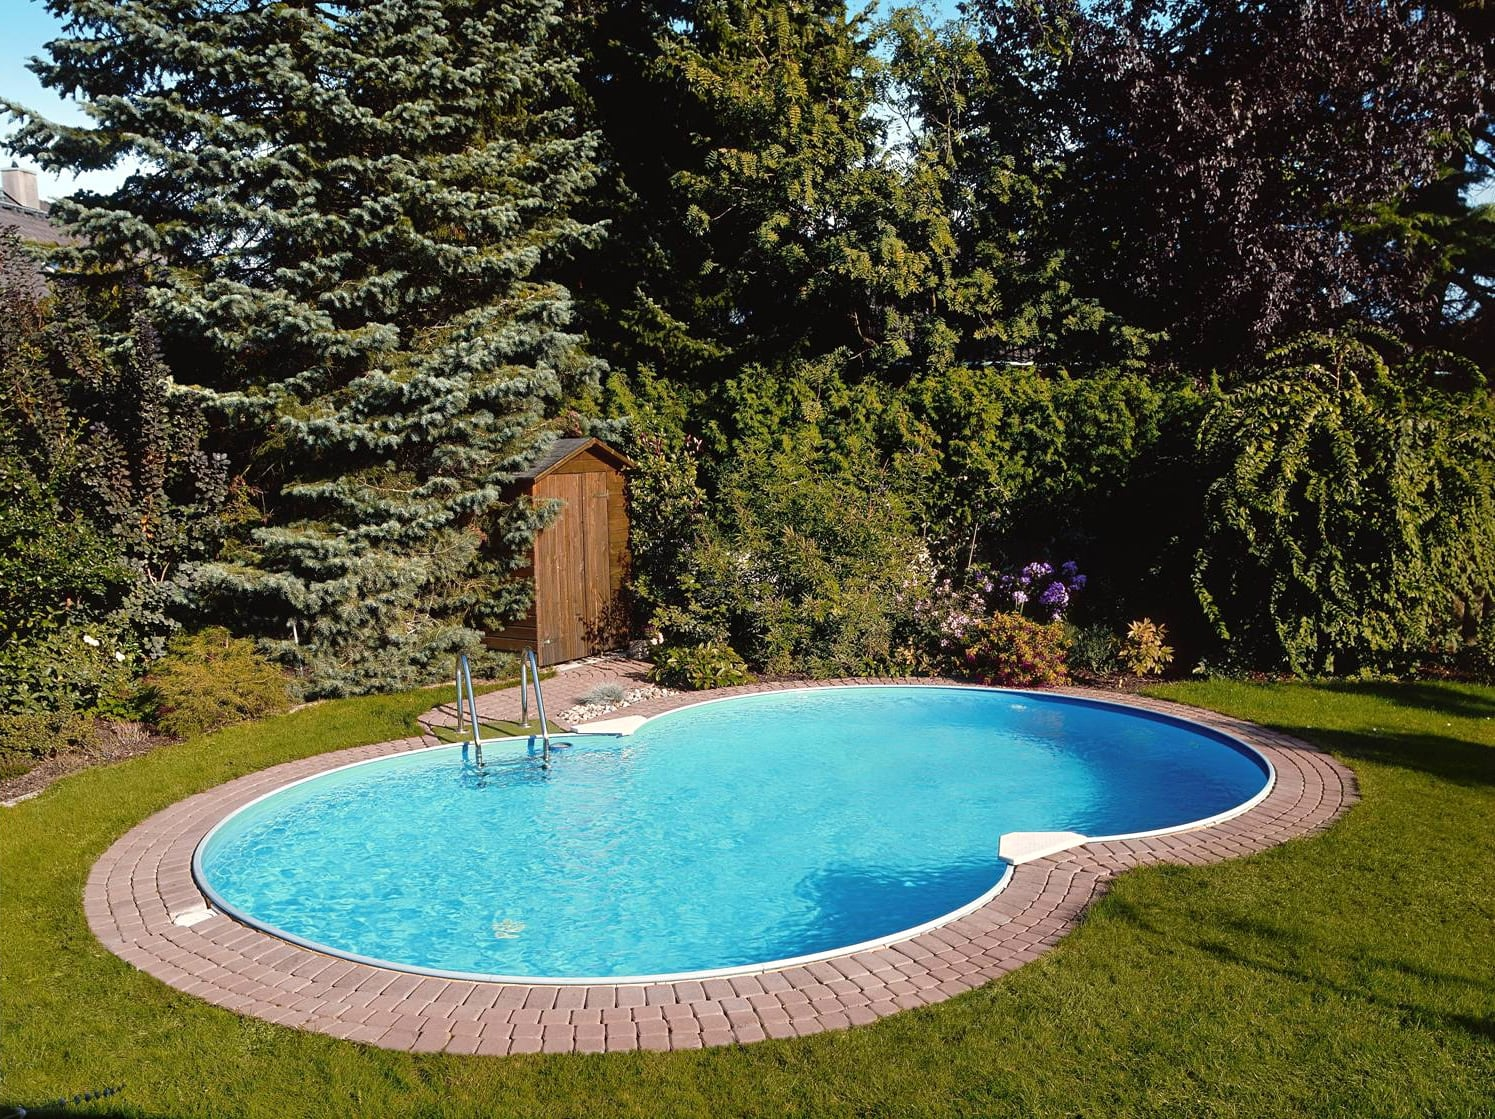 Piscineitalia kit piscina interrata in acciaio skyblue space 150 - Foto piscine interrate ...